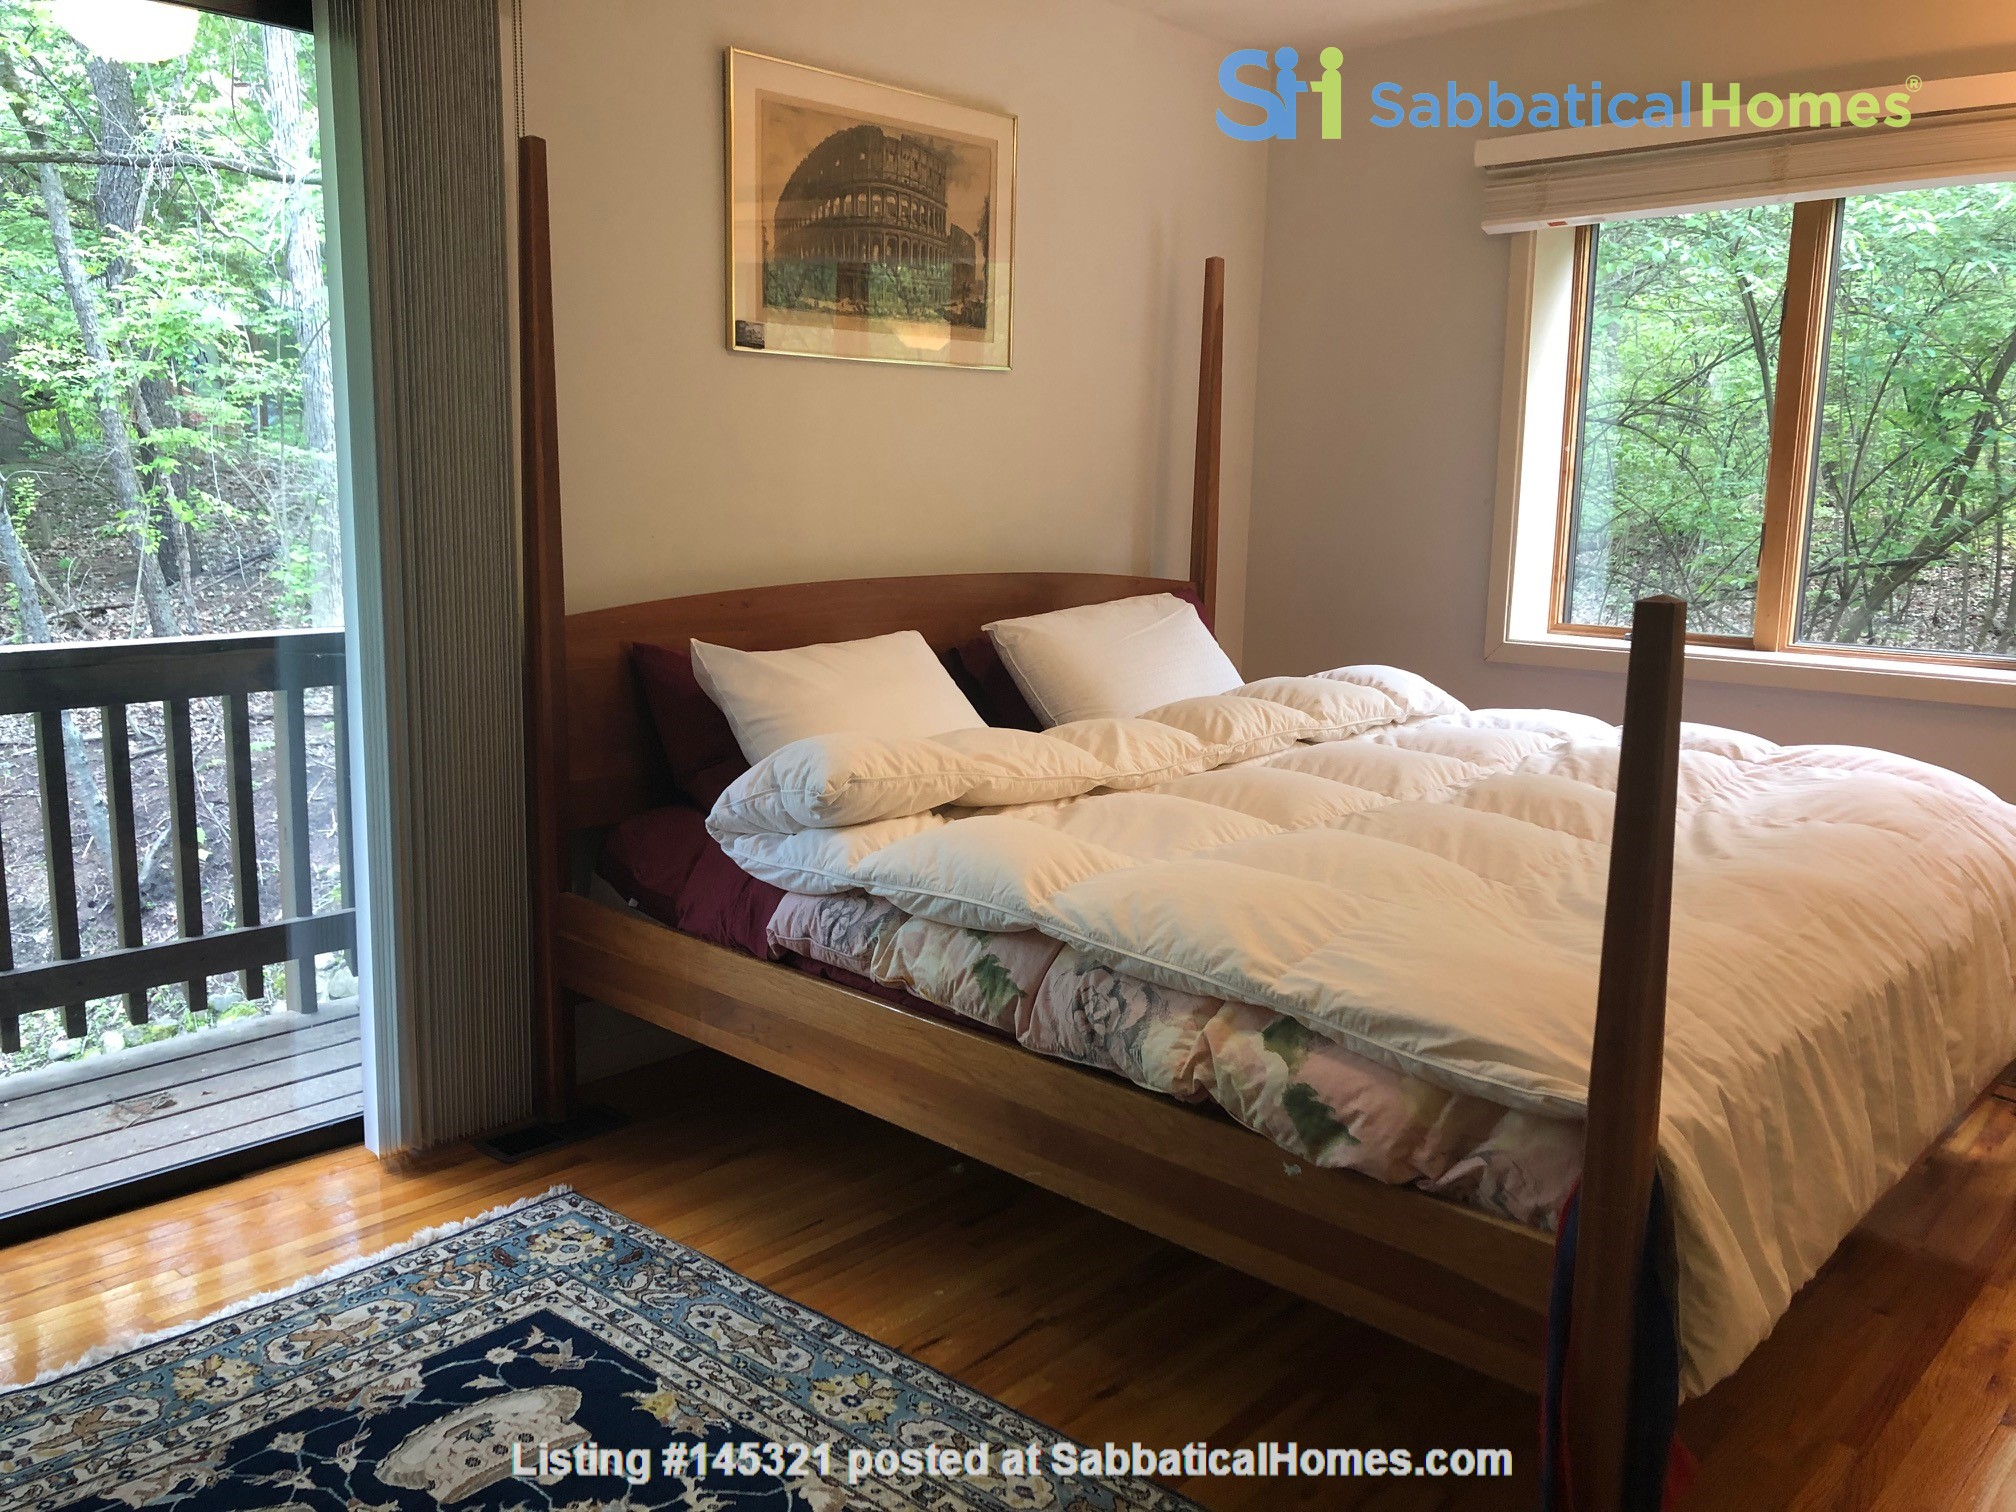 Lovely four bedroom house, wooded setting near UM Central campus & hospital Home Rental in Ann Arbor, Michigan, United States 4